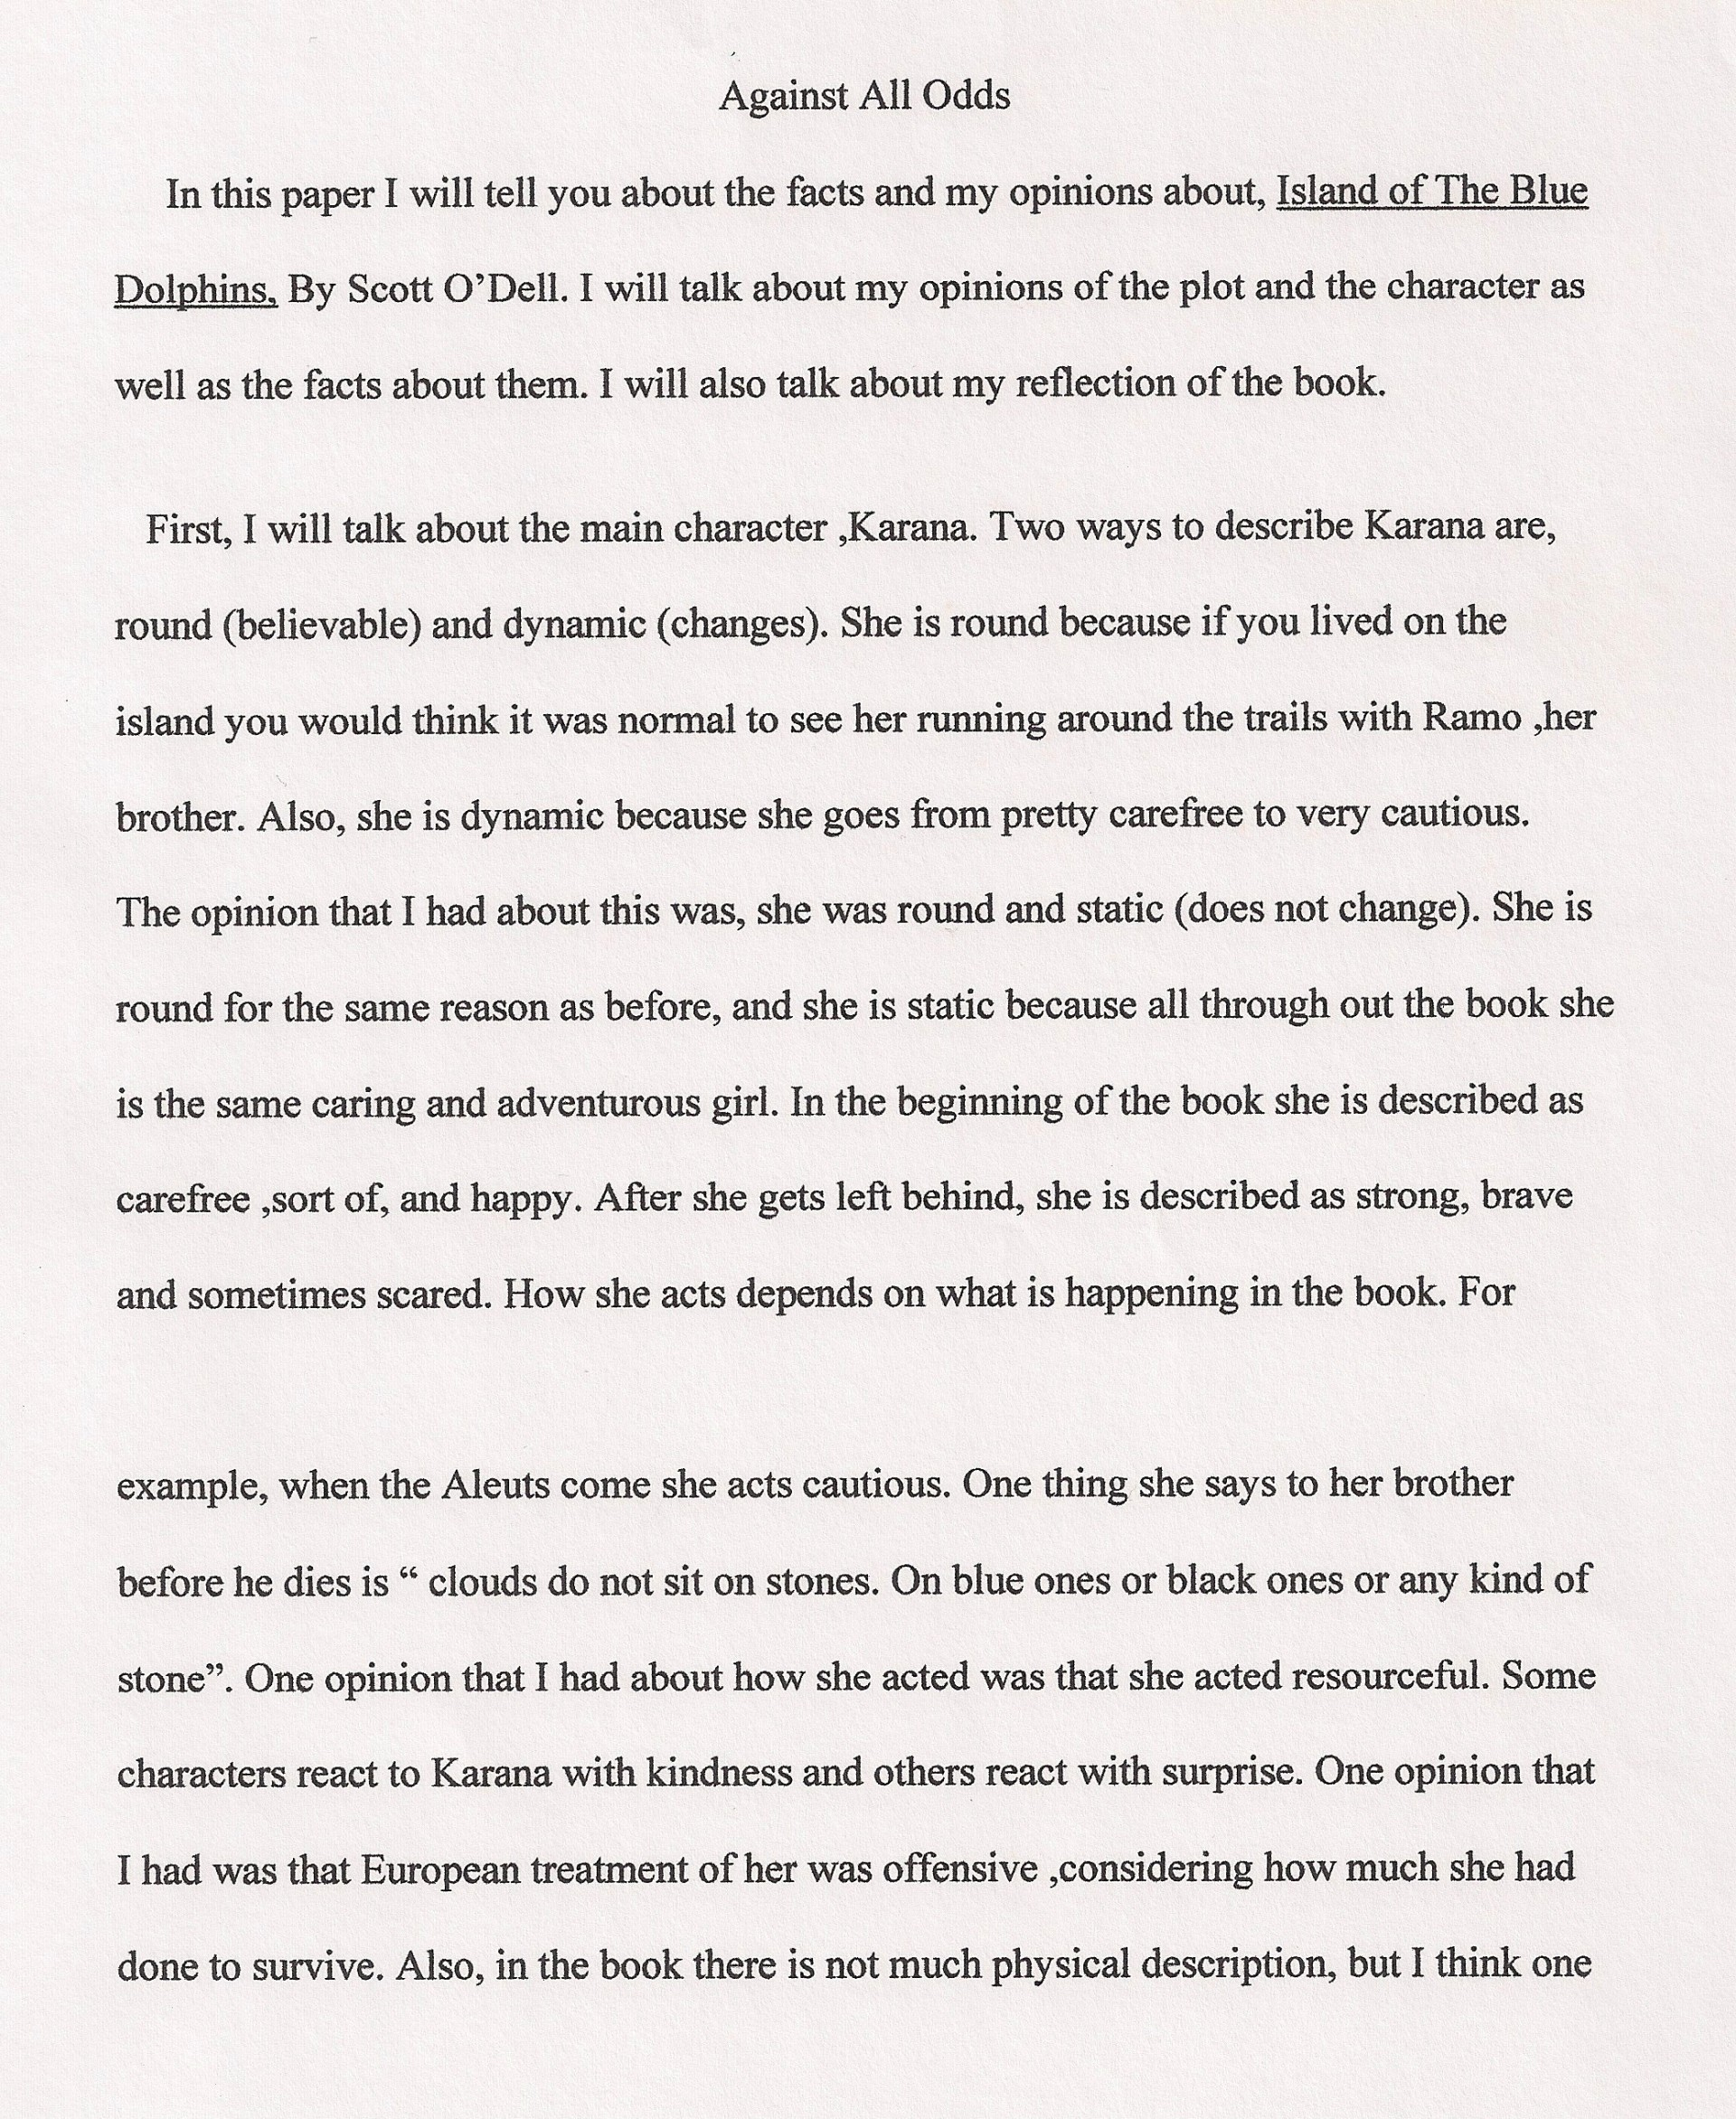 011 Persuasive Essay Writing For 5th Grade Example Week Against All Odds Merifully Samples L Impressive Essays Written By Fifth Graders A Prompts 1920